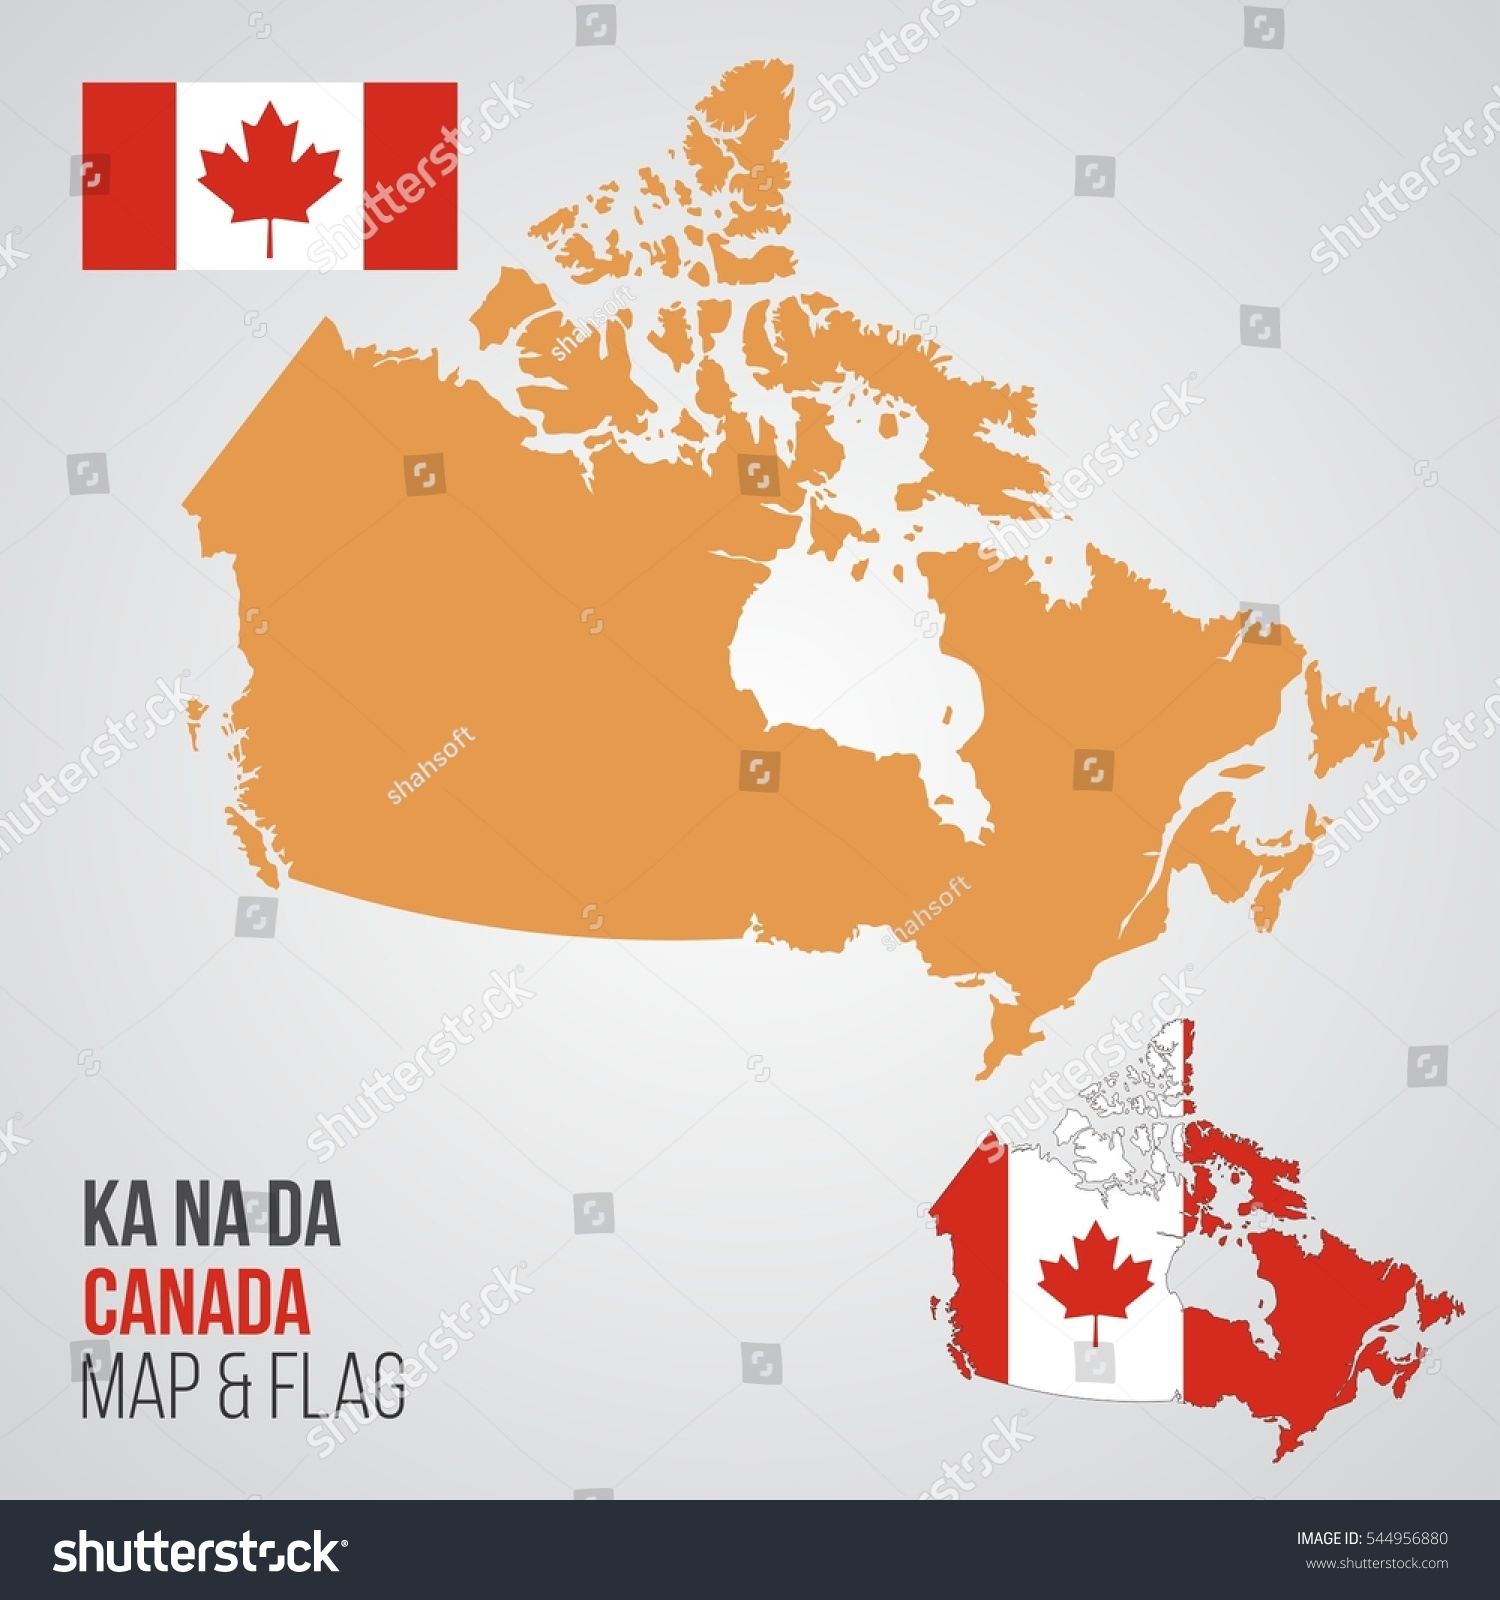 Canada Map Flag.Canada Map Flag Stock Vector Royalty Free 544956880 Shutterstock